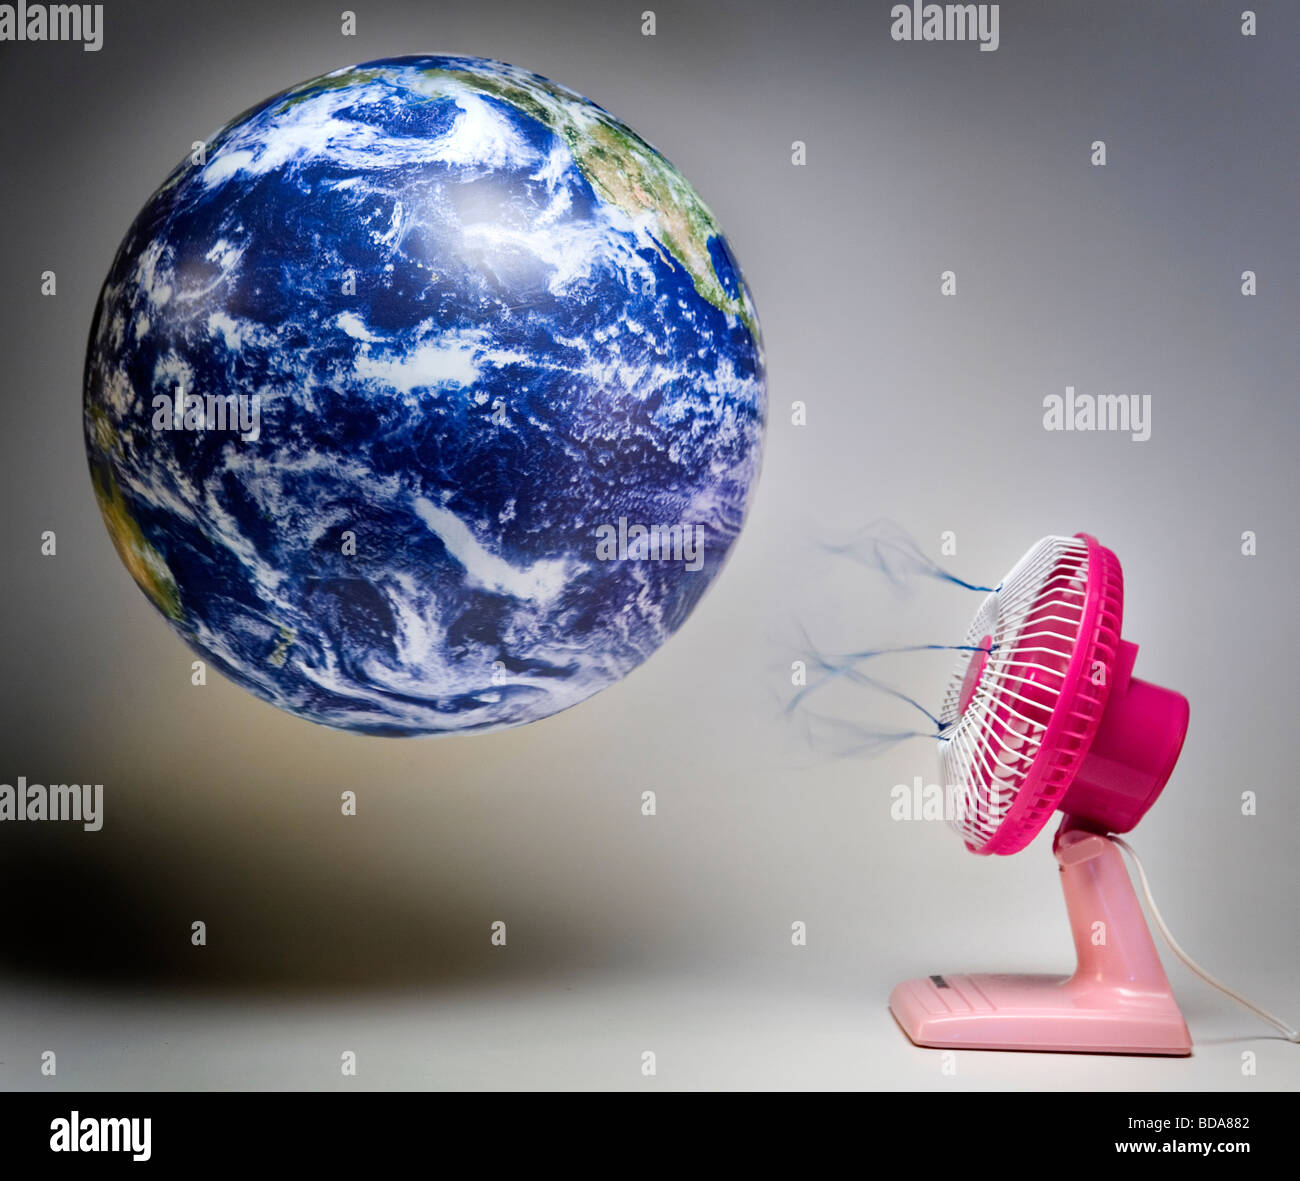 Still shot of a world globe with a pink fan blowing air on it - Stock Image